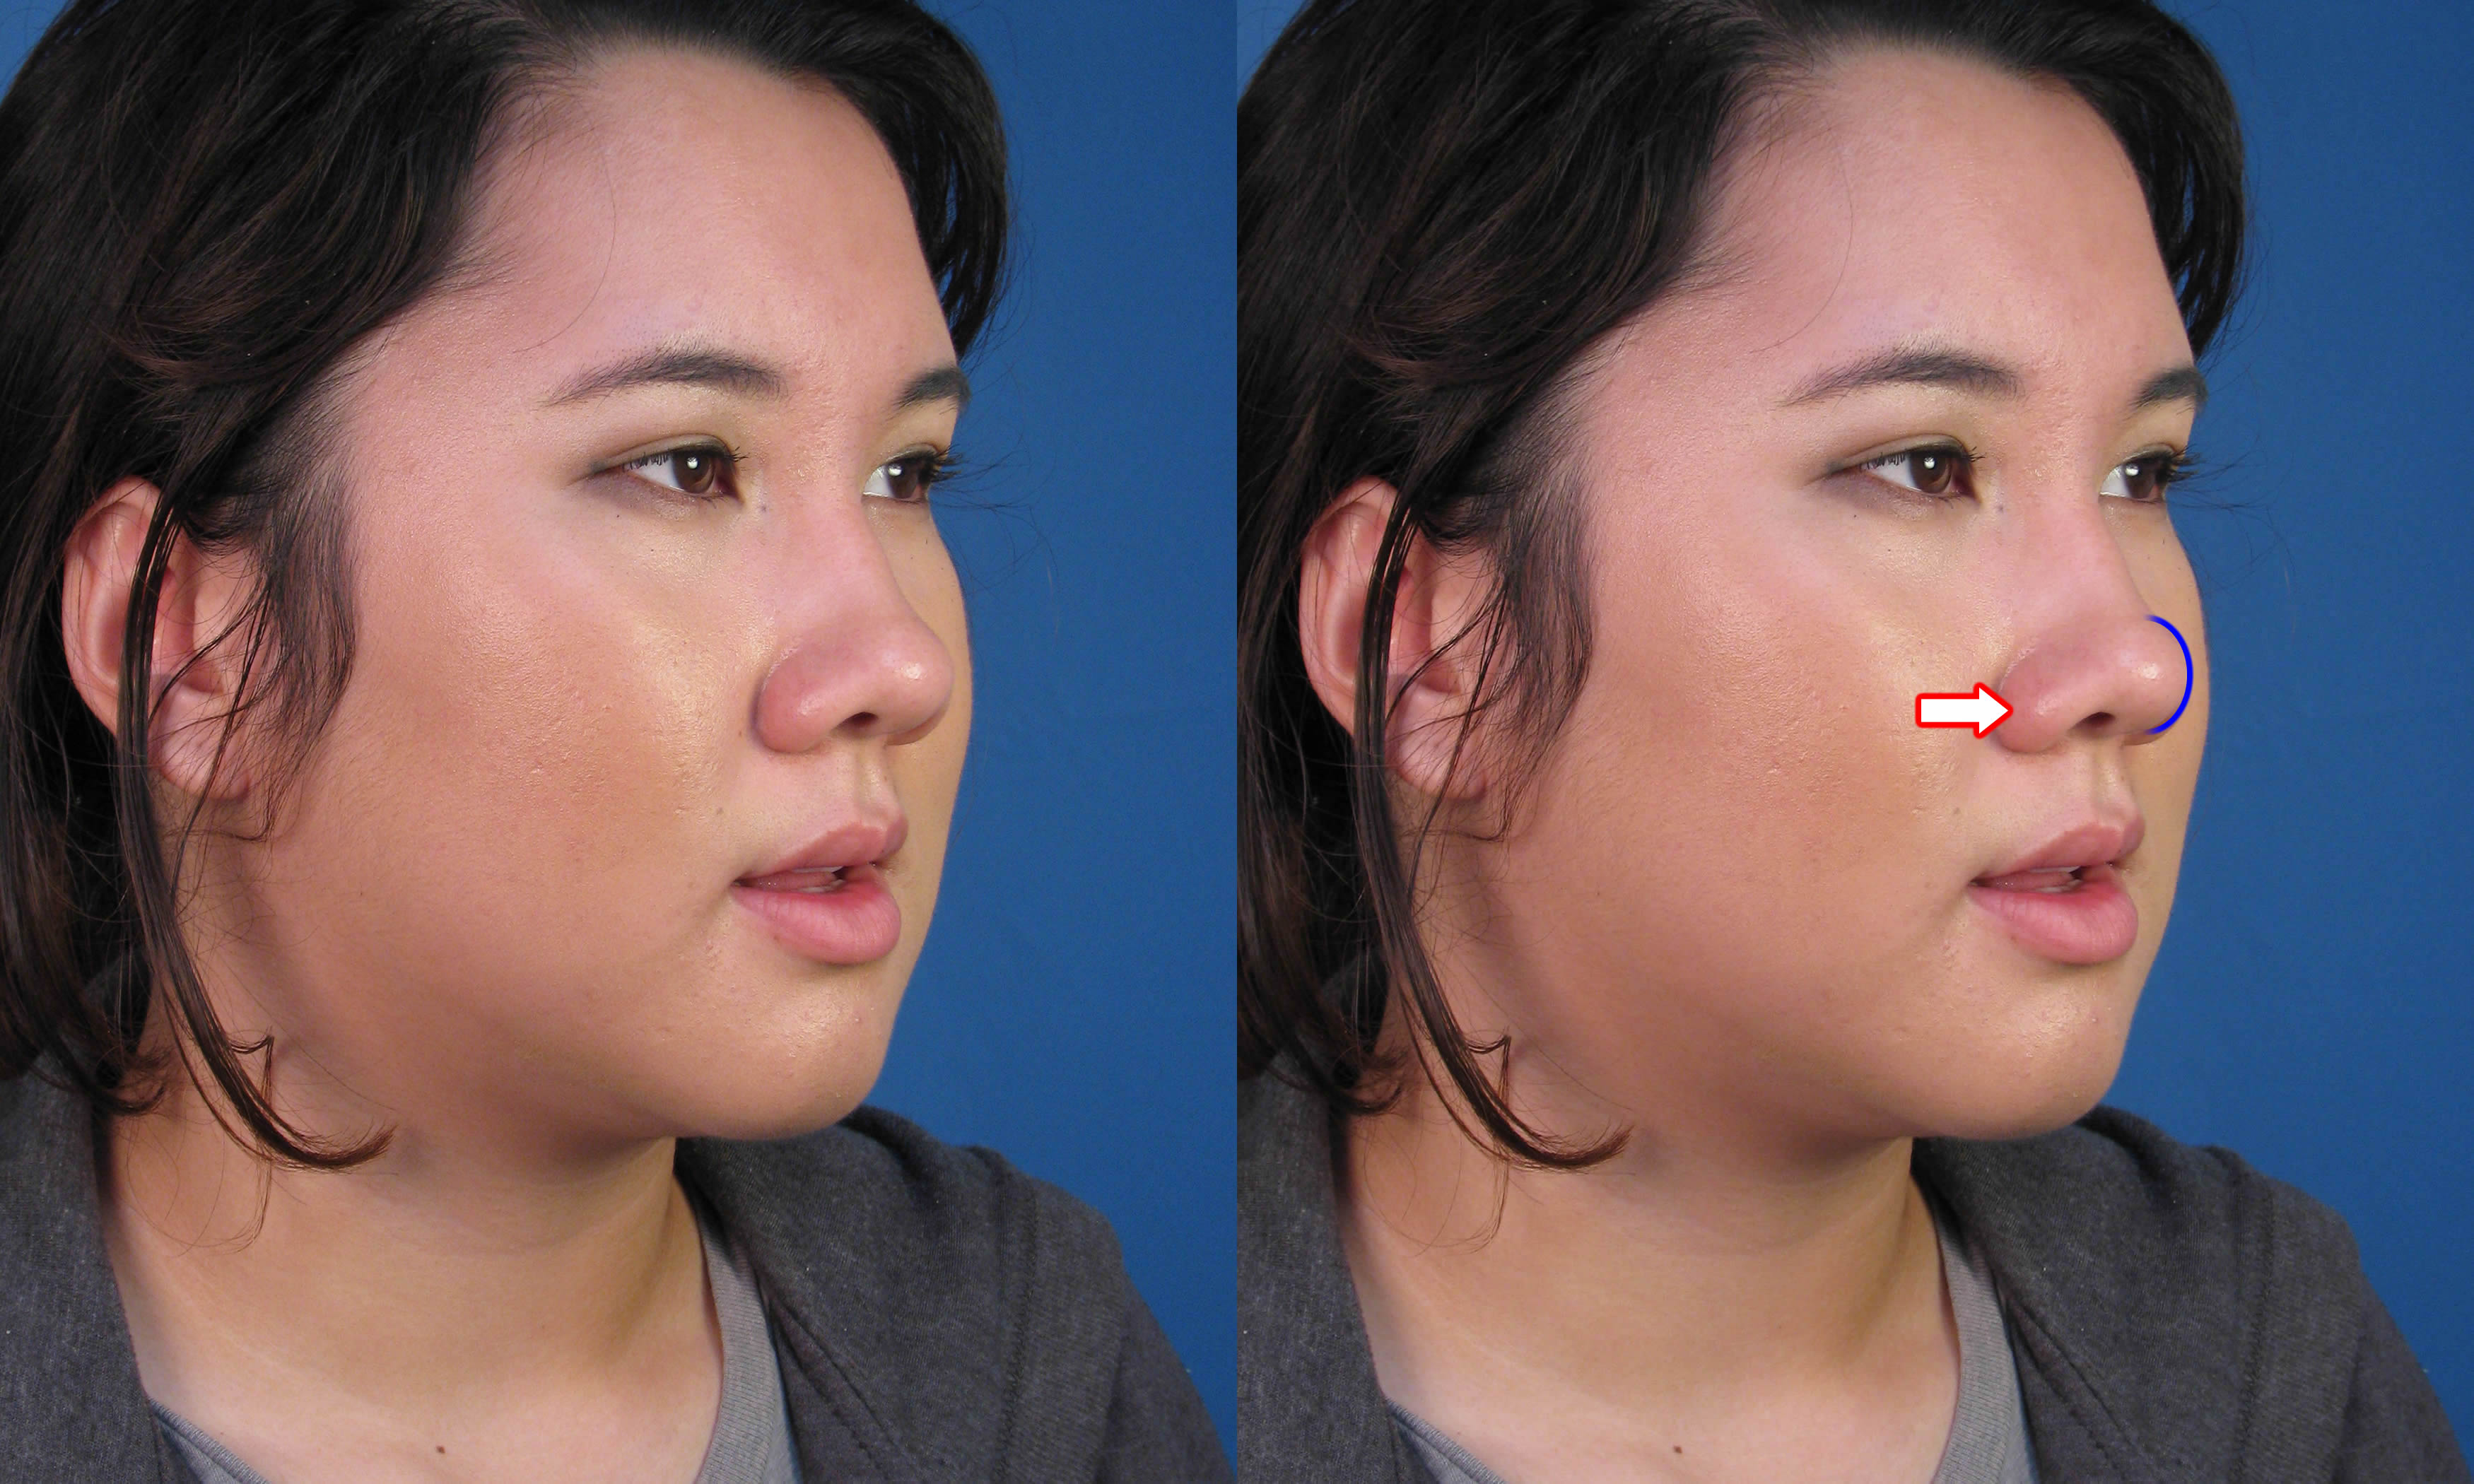 Will asian nose rhinoplasty hope